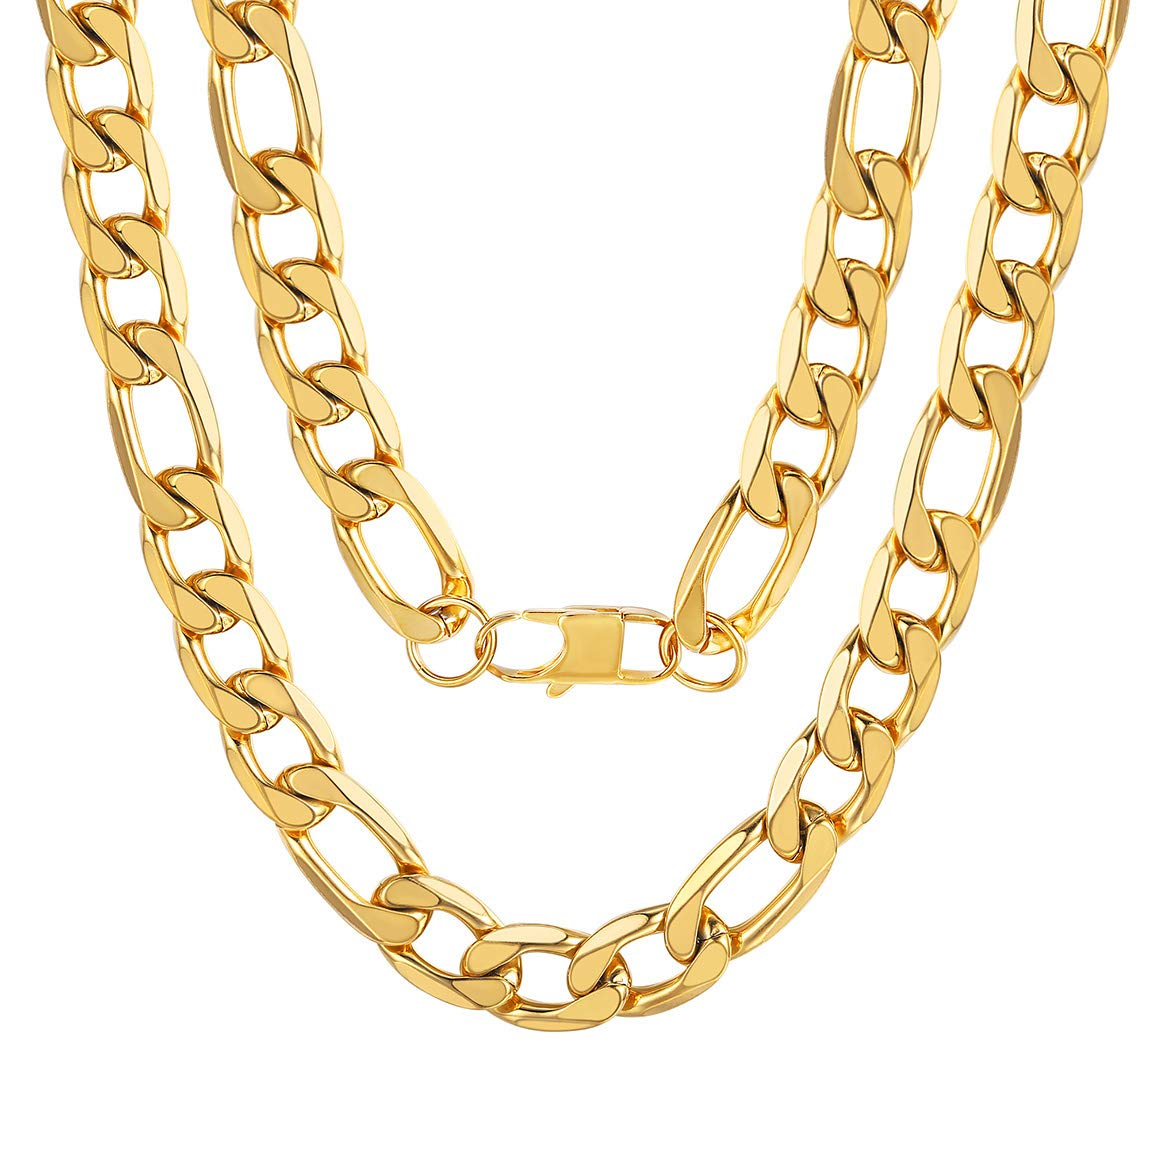 Send Gift Box ChainsPro Mens NK 3:1 Figaro Chain Necklace-4//5//6//7.5//8//9//12//13MM Width 18K Gold Plated//316L Stainless Steel//Black 18-30